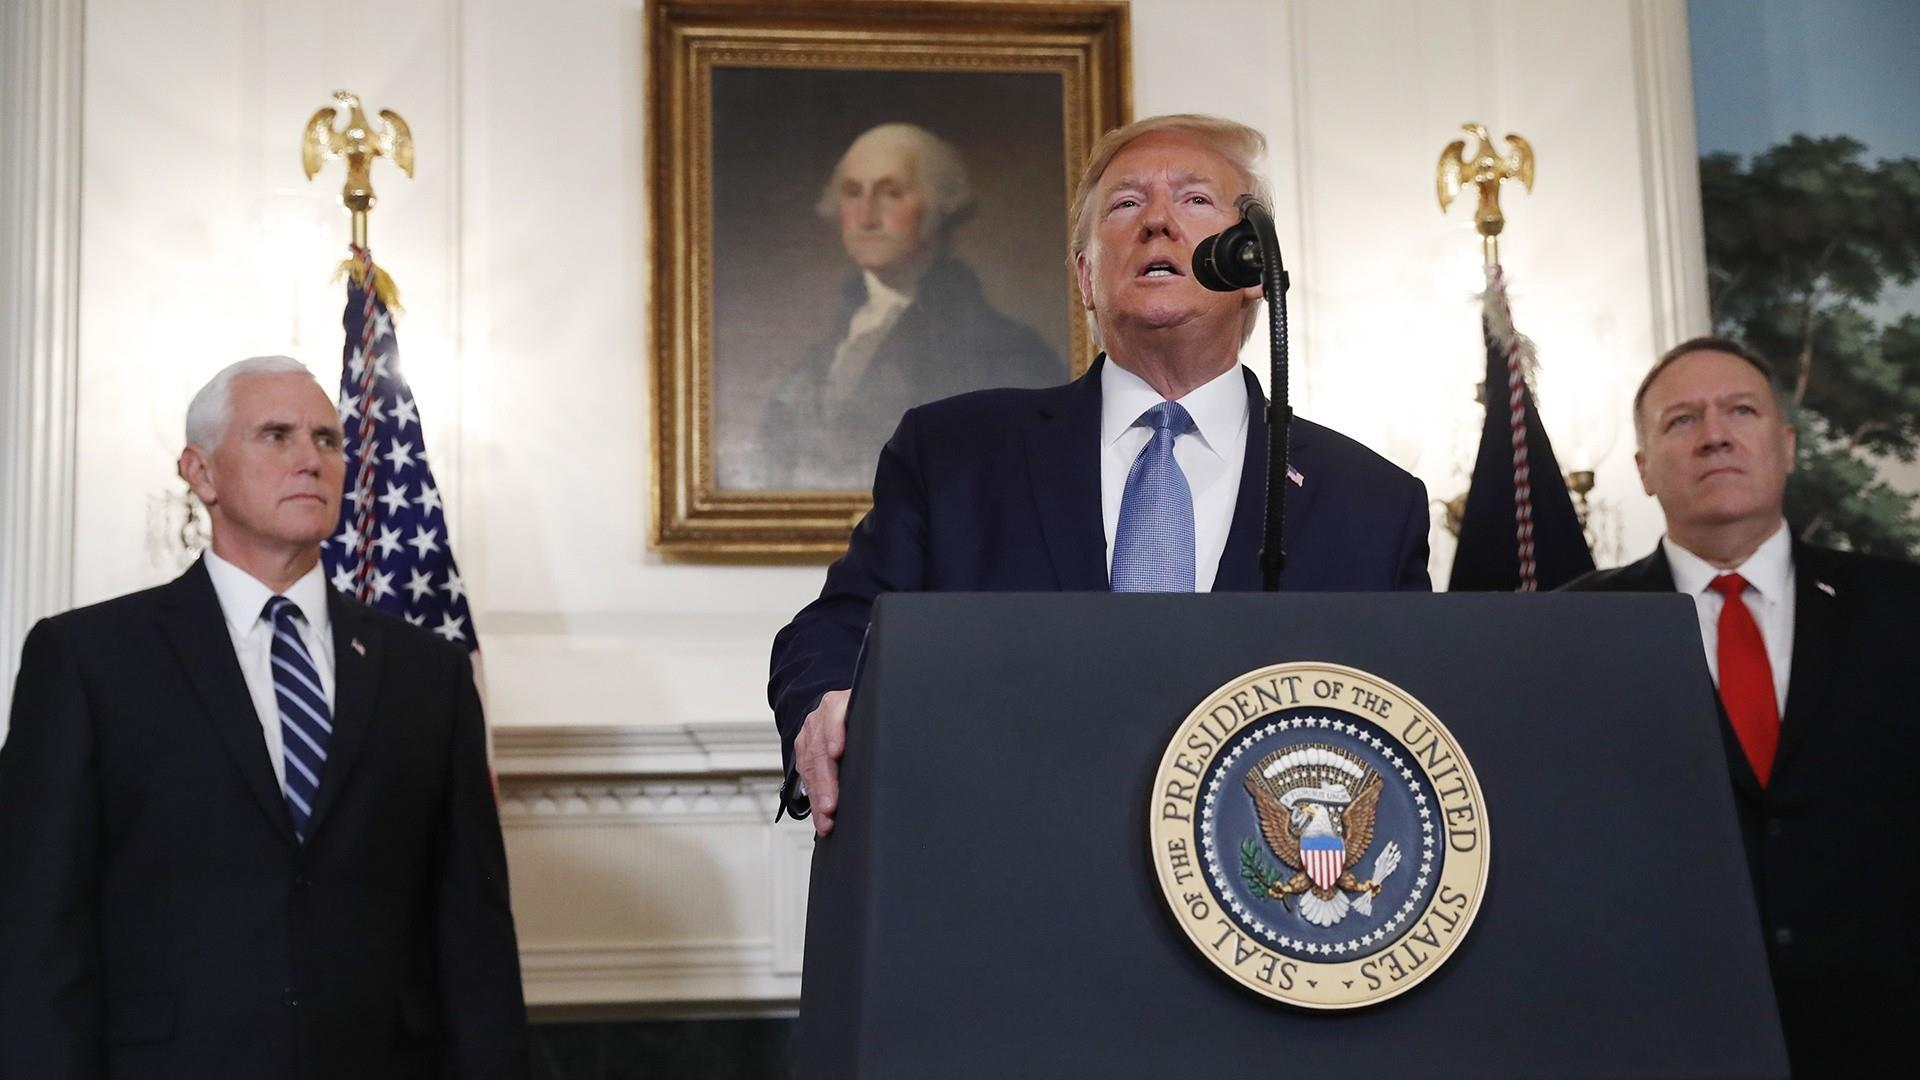 Trump announces lifted sanctions against Turkey after Syrian cease-fire